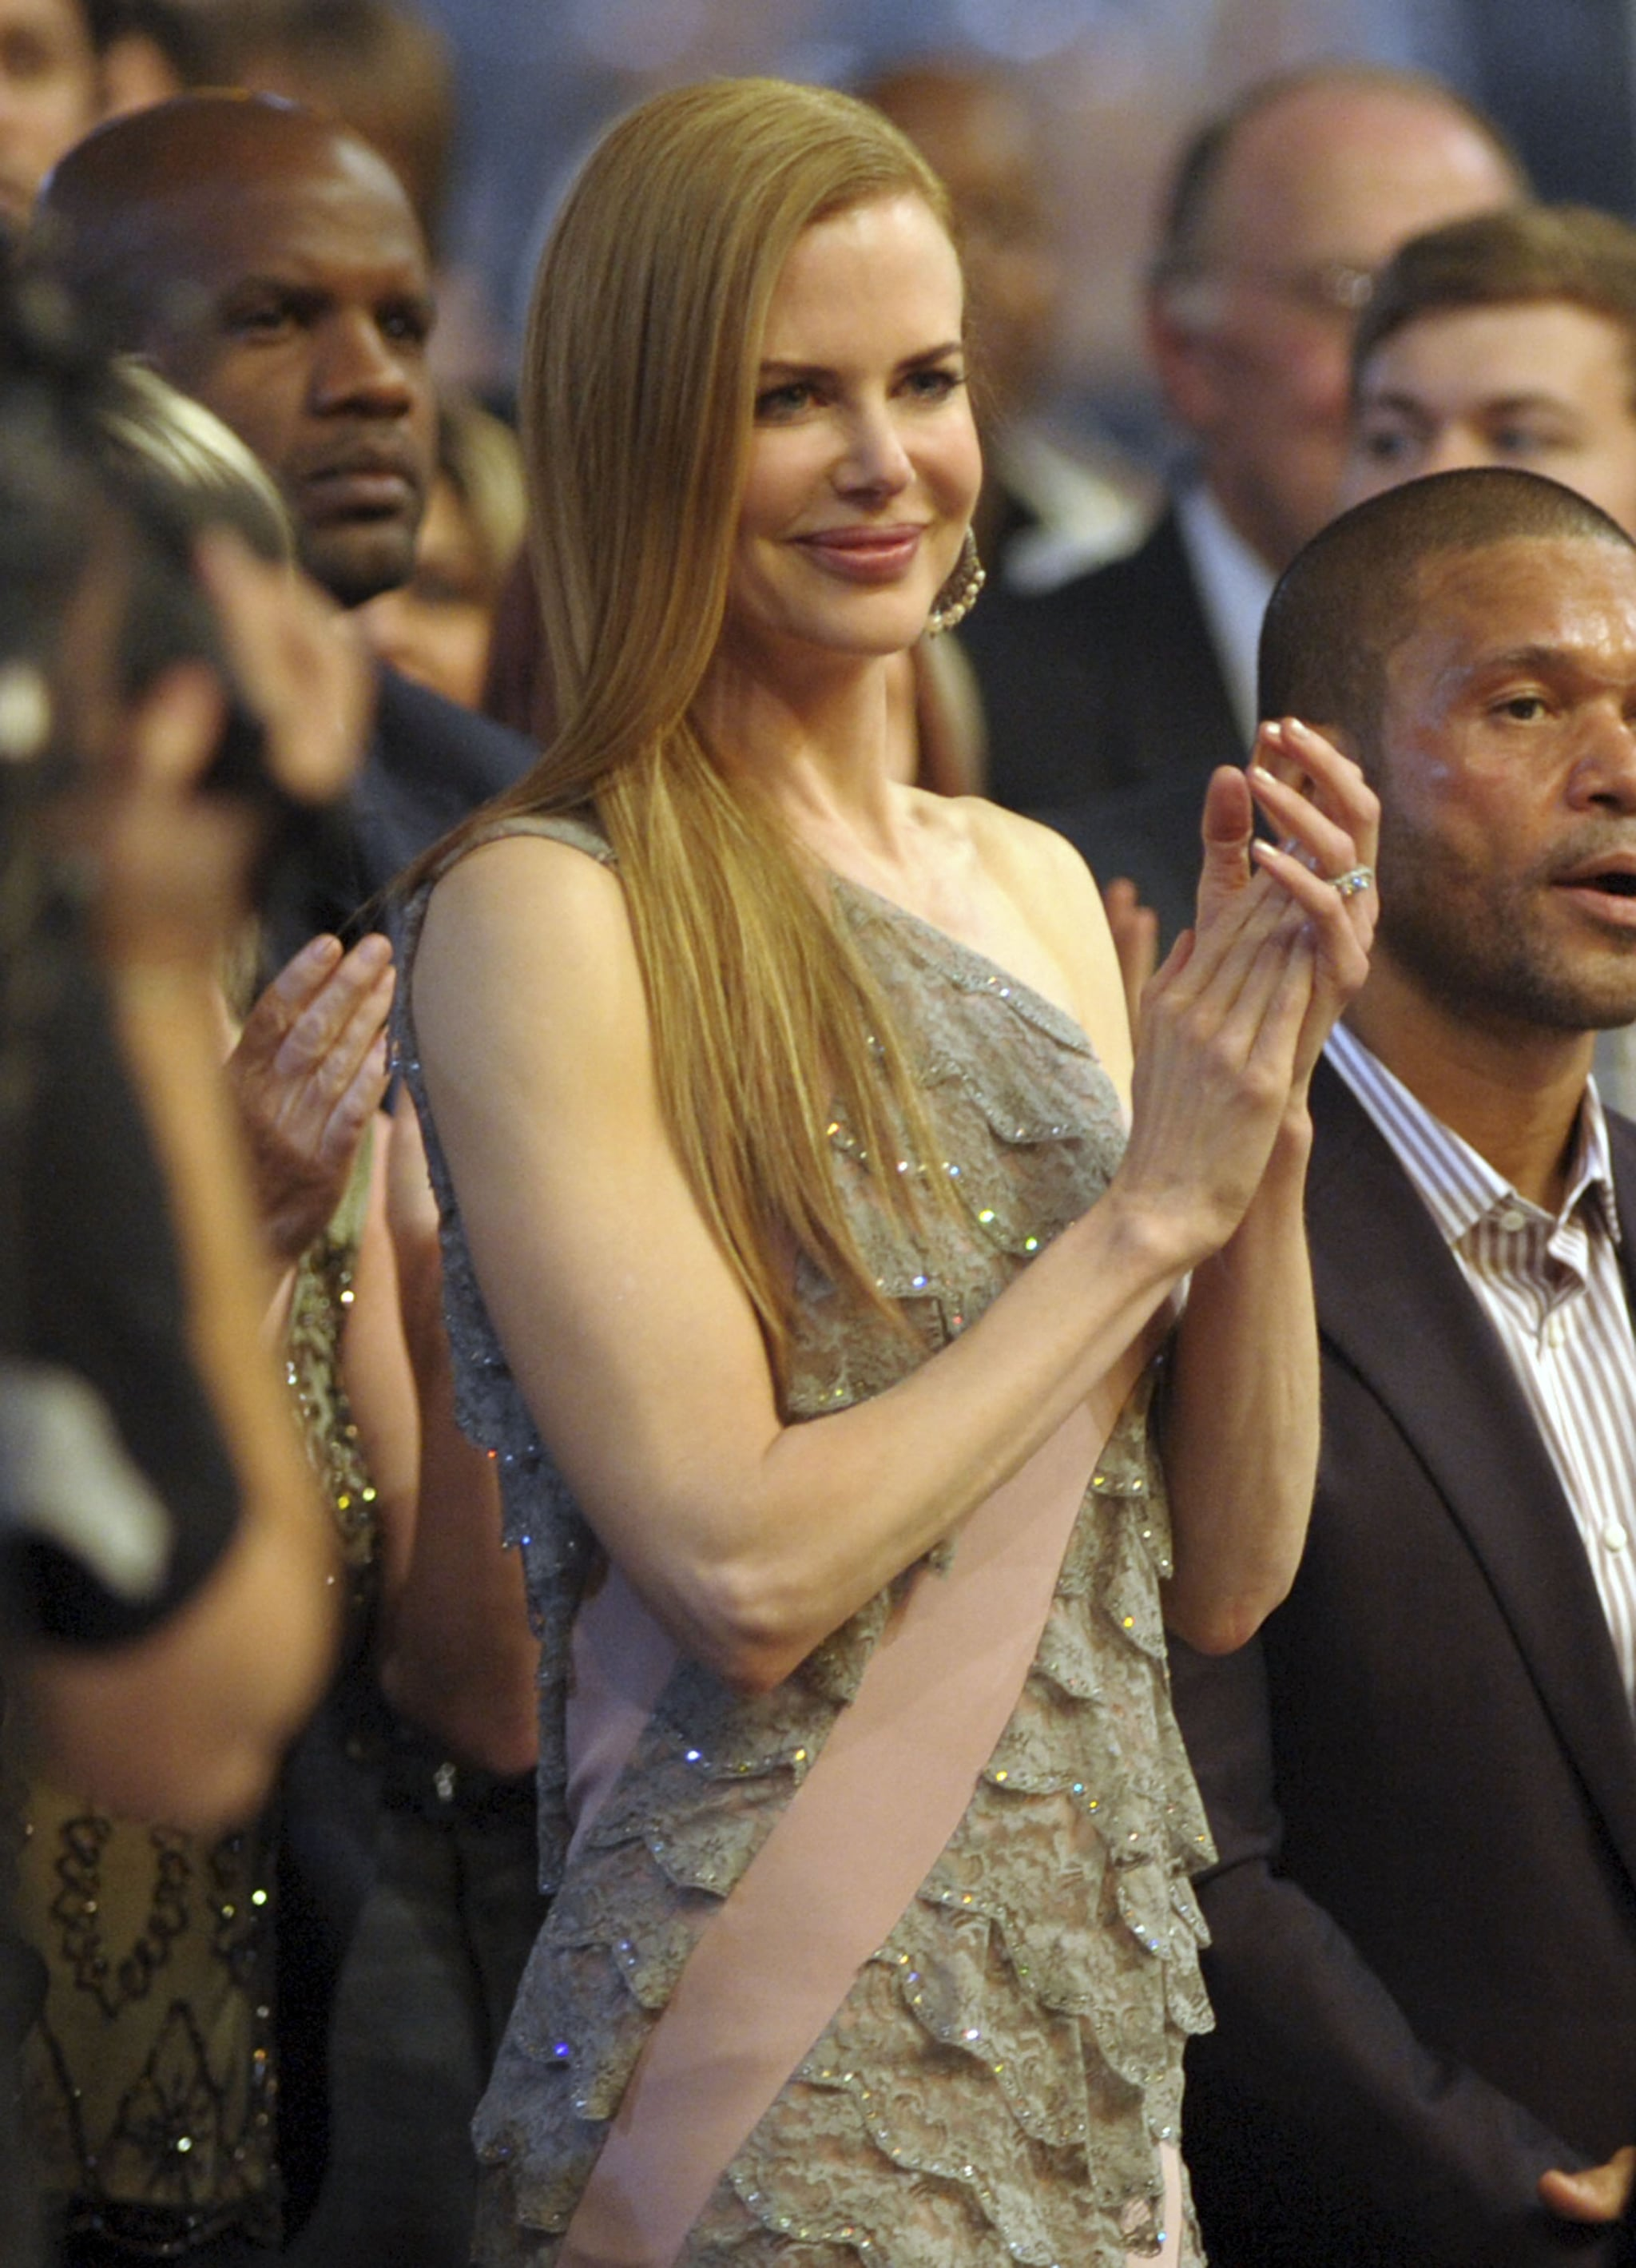 Nicole Kidman clapped for Keith Urban as he accepted an award in 2009.